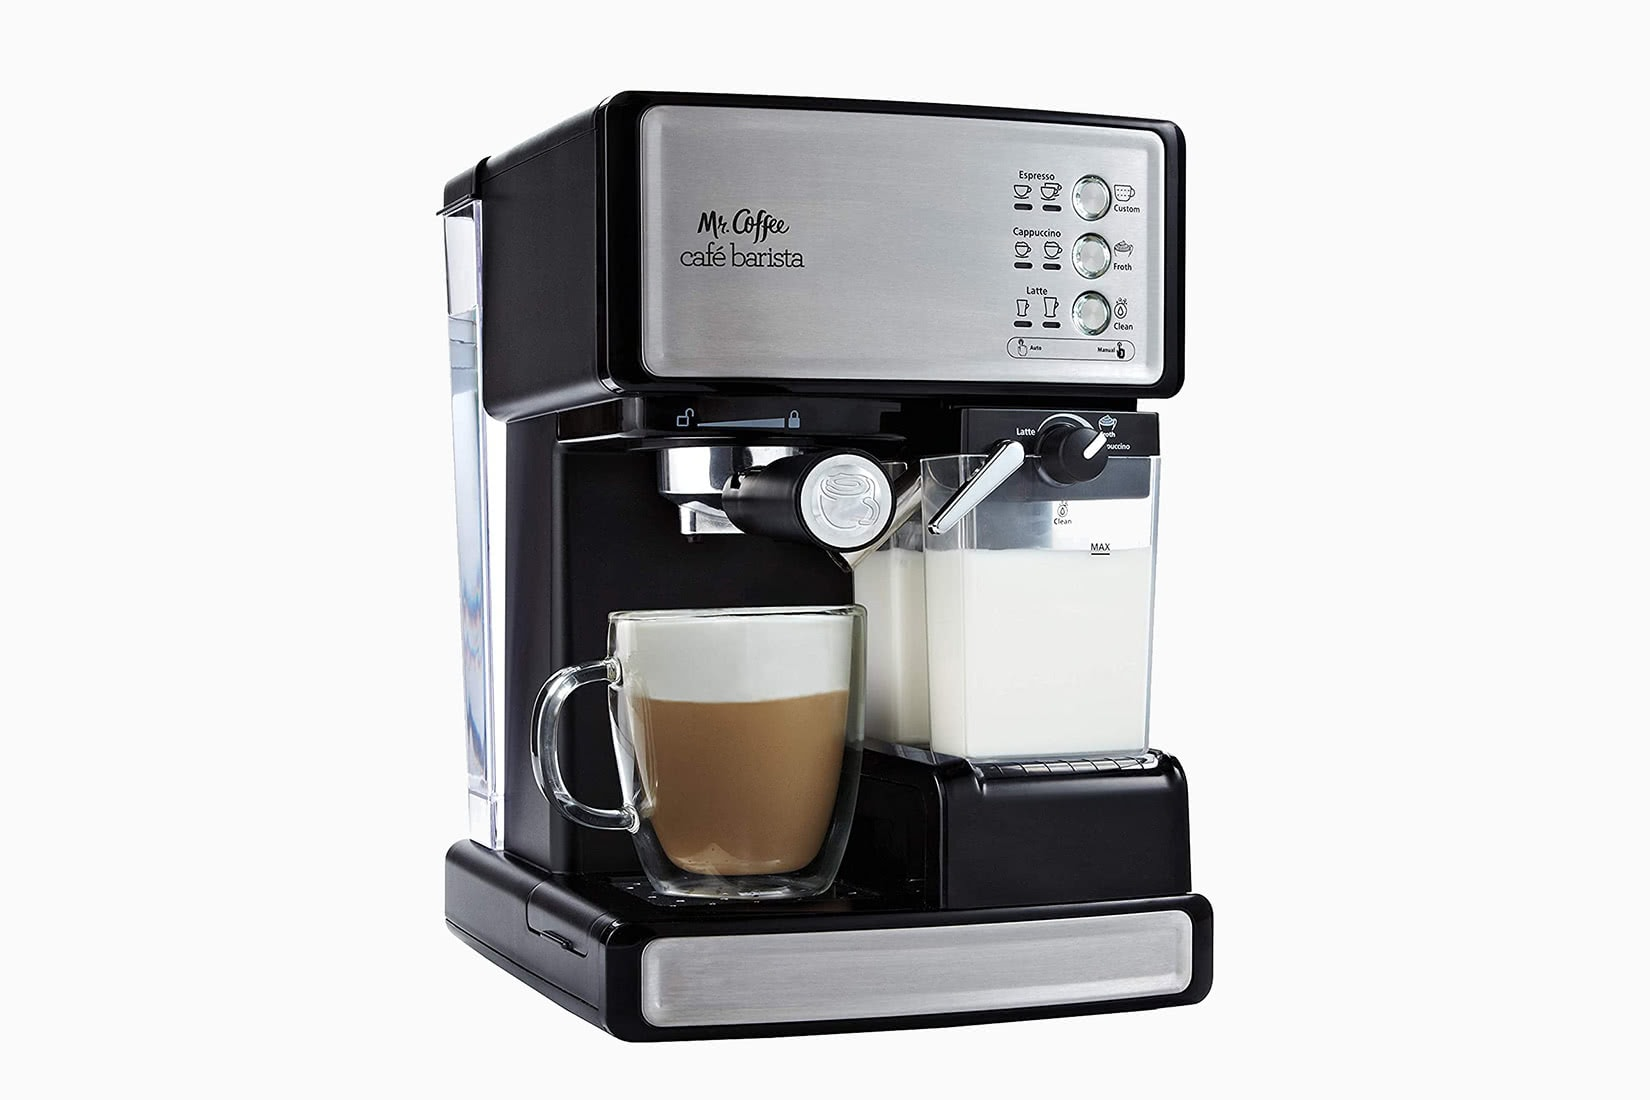 best espresso machine frother coffee cafe barista review - Luxe Digital